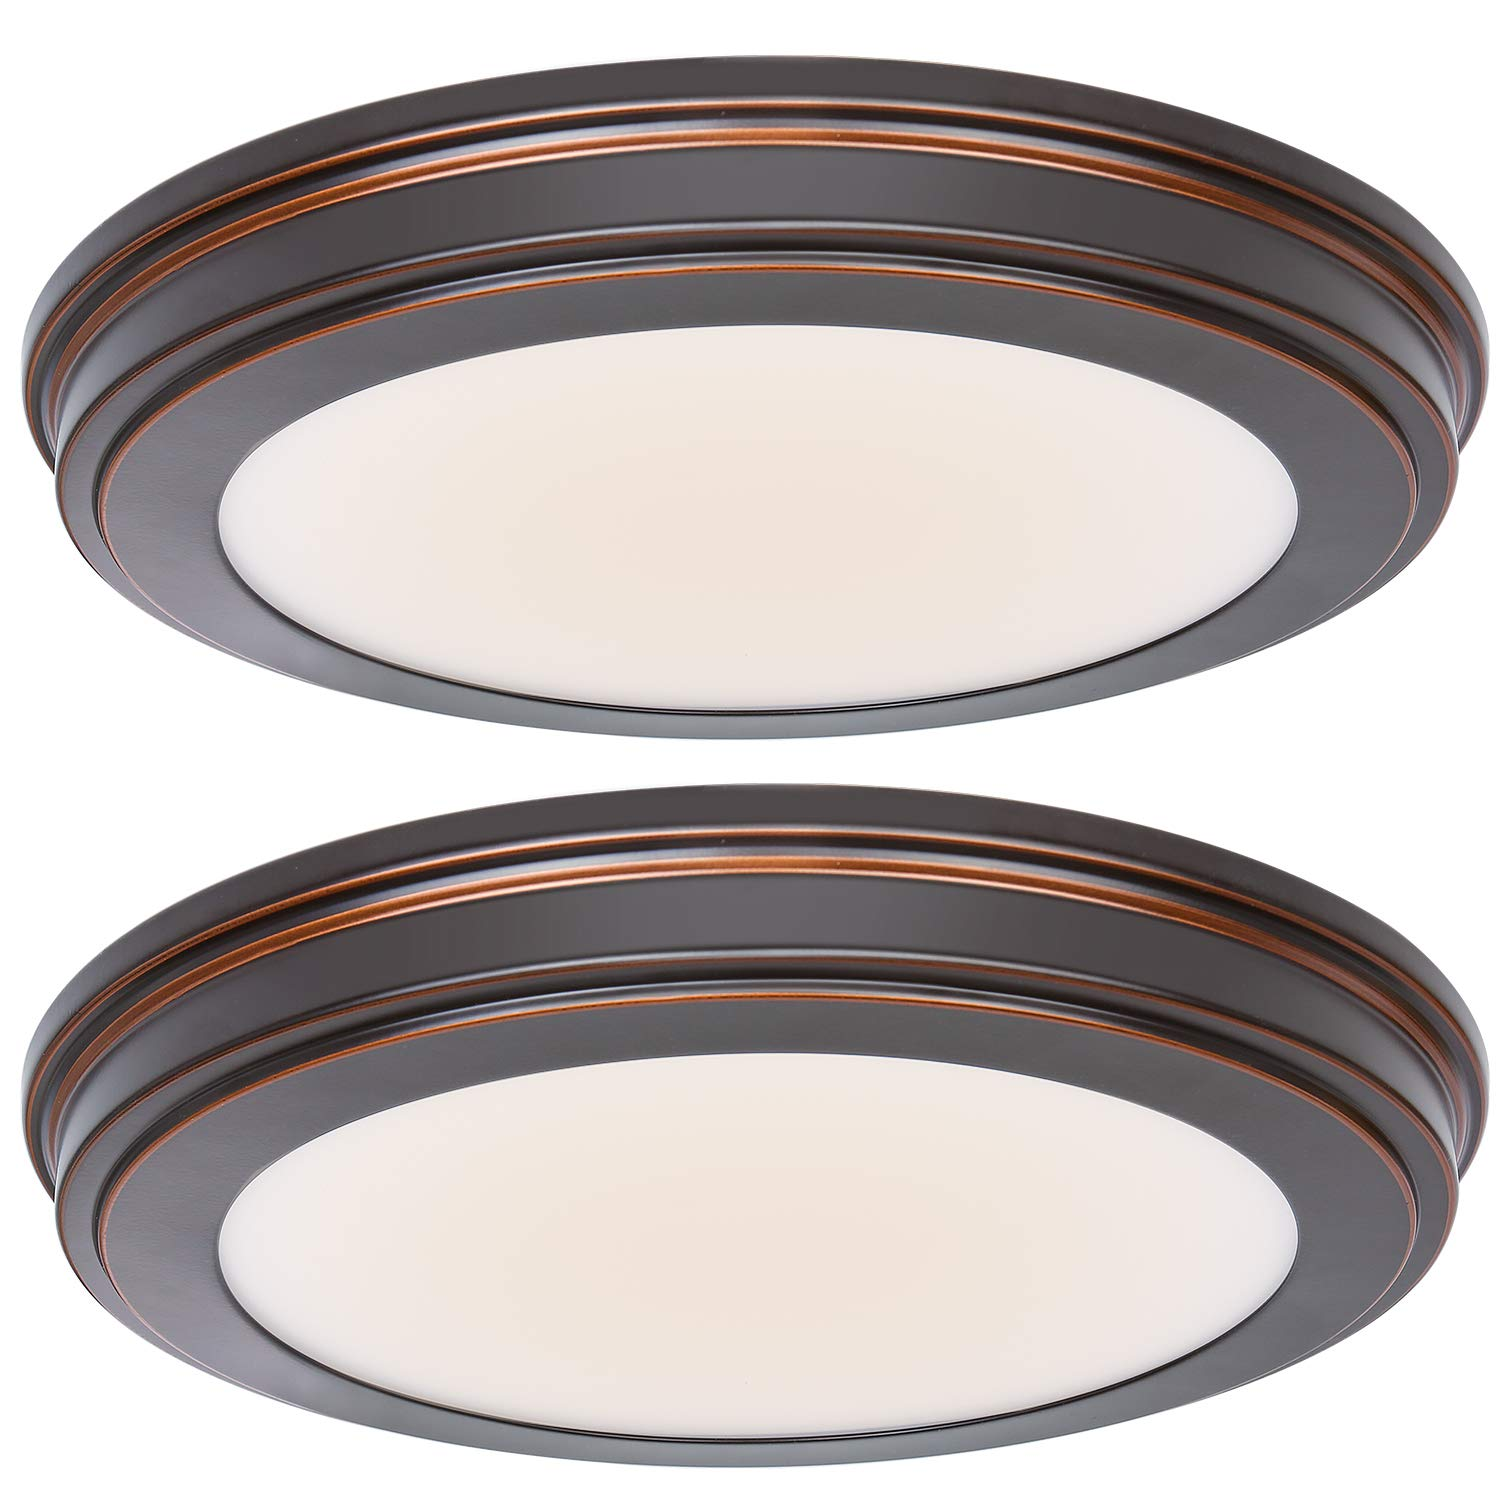 Hykolity 13 inch Oil Rubbed Bronze LED Ceiling Flush Mount, 3000K/4000K/5000K Switch 1365LM, 180W Incandescent Equivalent,CRI90 LED Round Ceiling Light Fixture for Bathrooom Bedroom Dining Room Office